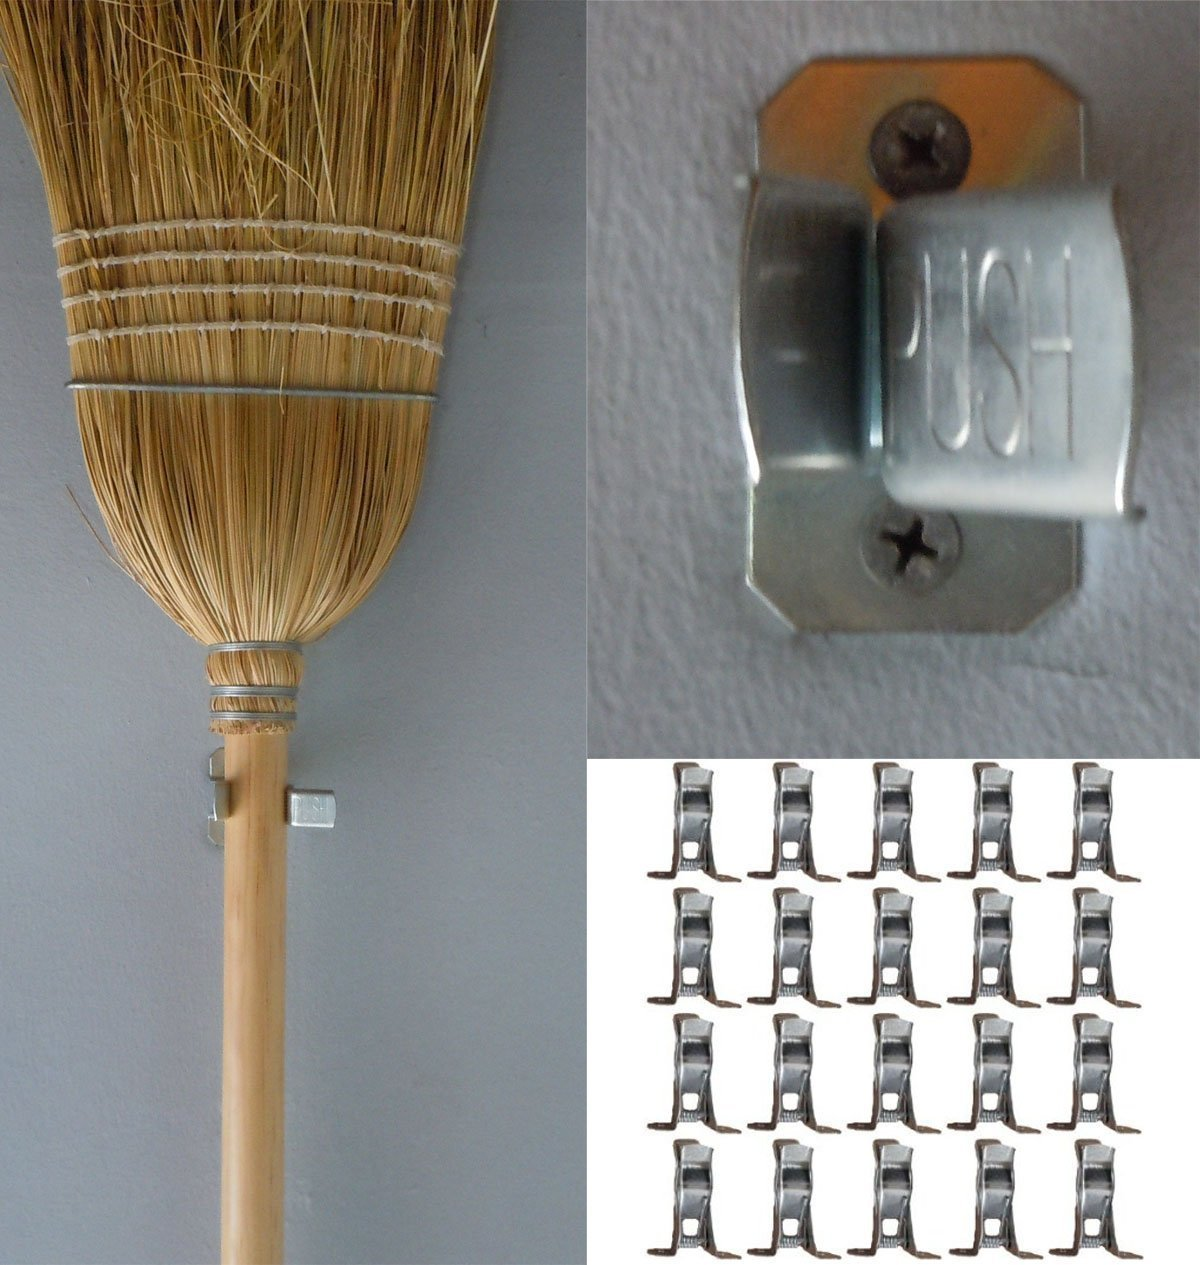 Genial Amazon.com: Bulldog Clamp (20 Pack) Spring Grip Garage Closet Wall  Organizer For Brooms, Mops, Rakes, Etc.: Home U0026 Kitchen